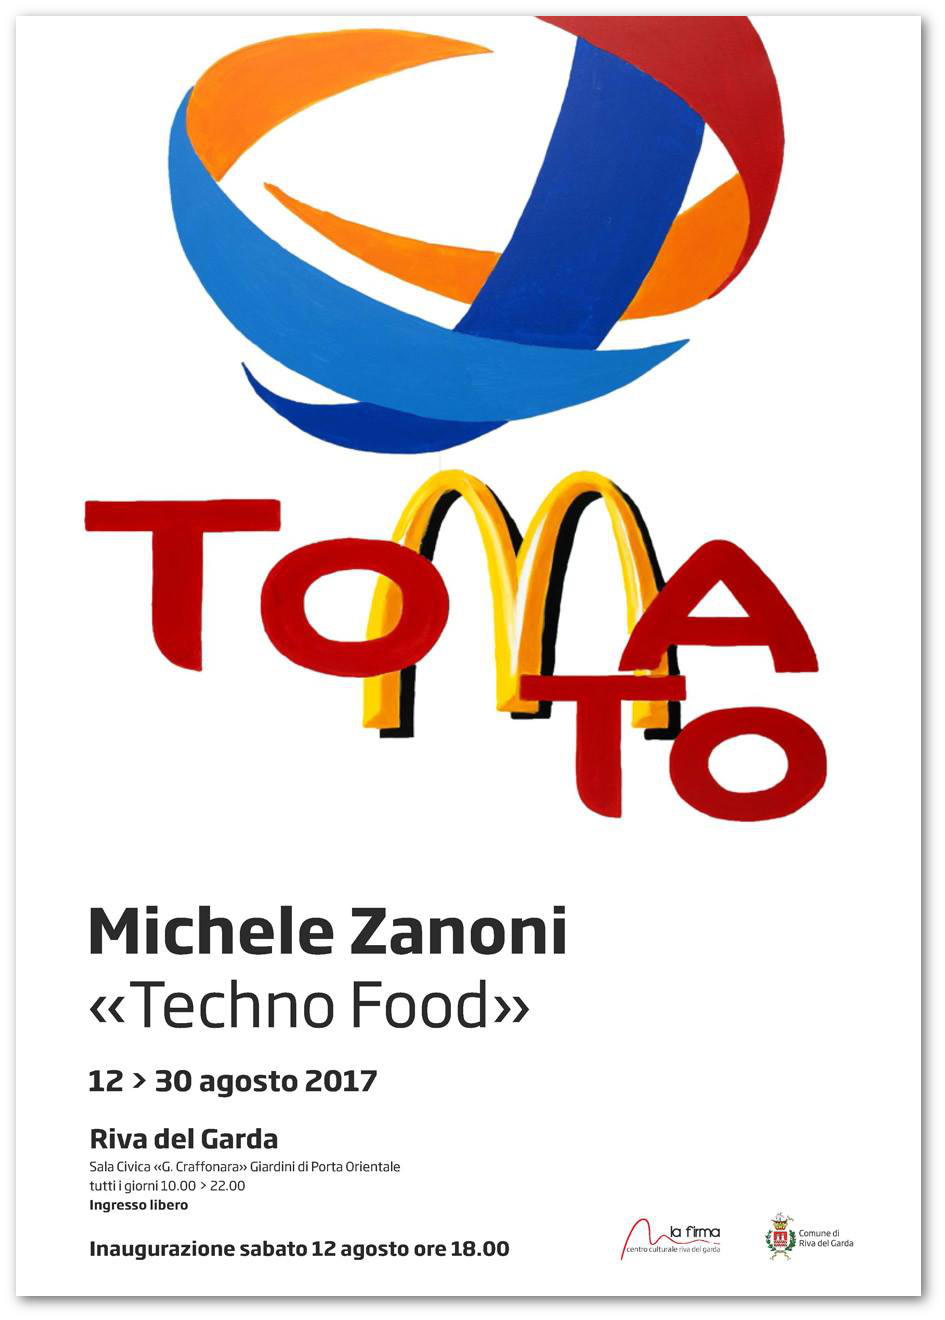 Michele Zanono - Techno Food